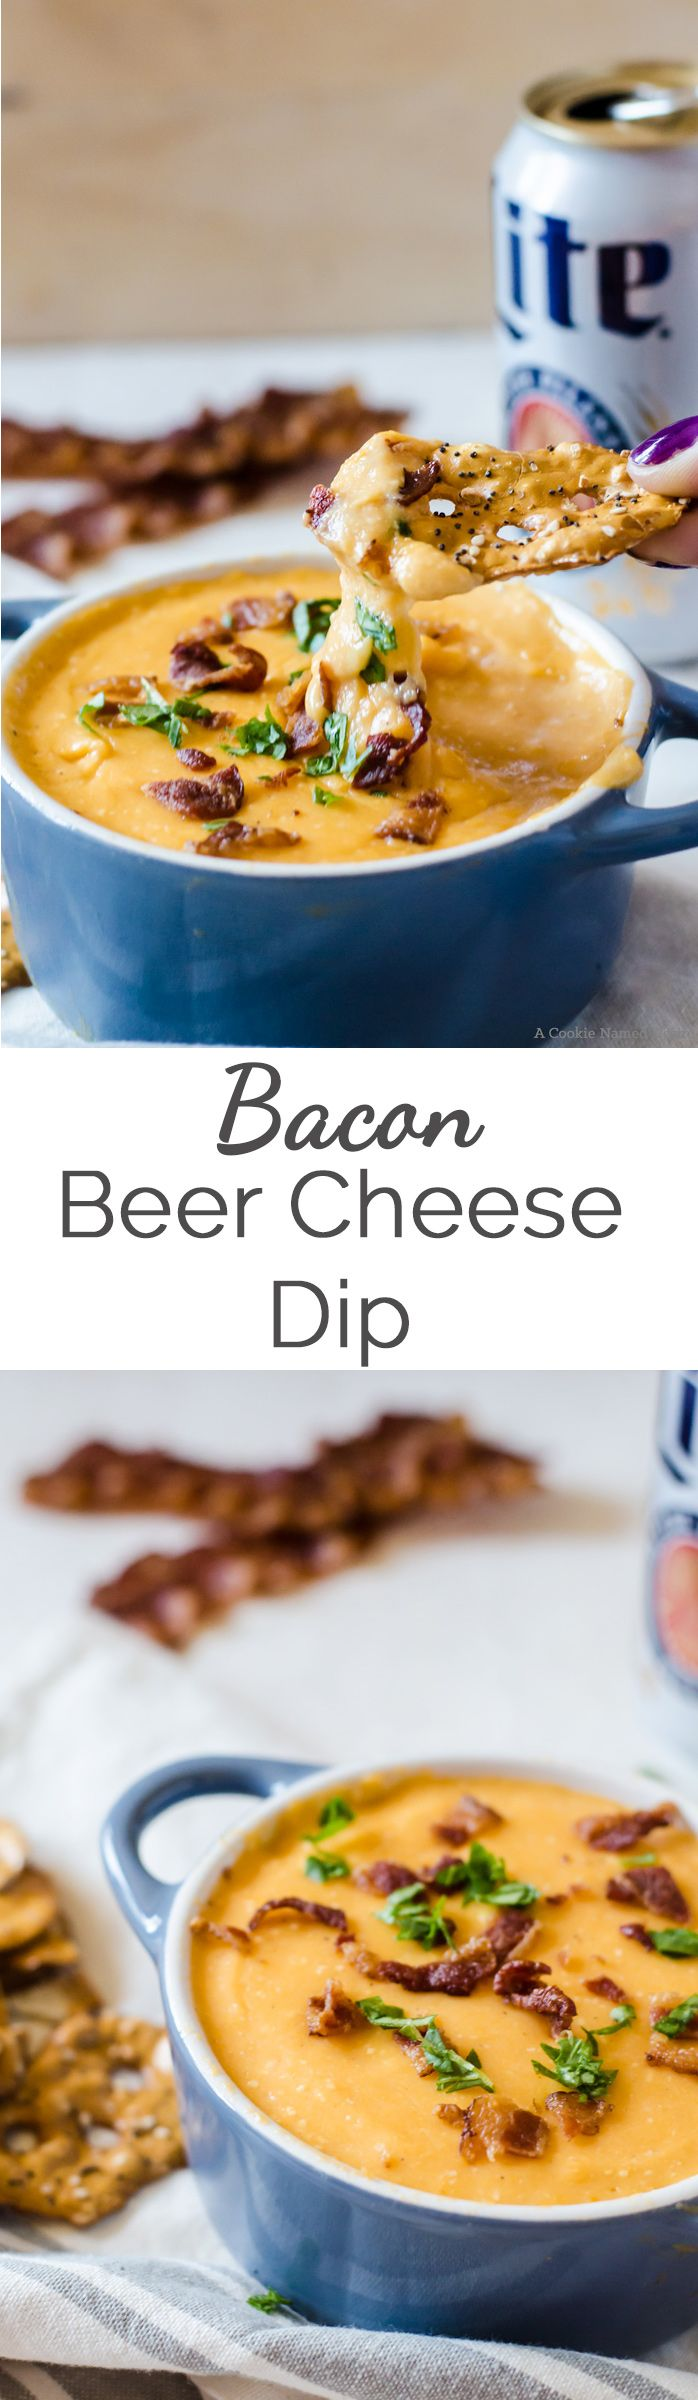 This bacon beer cheese dip will be a favorite among all your guests. This recipe is an easy appetizer that is done in no time!